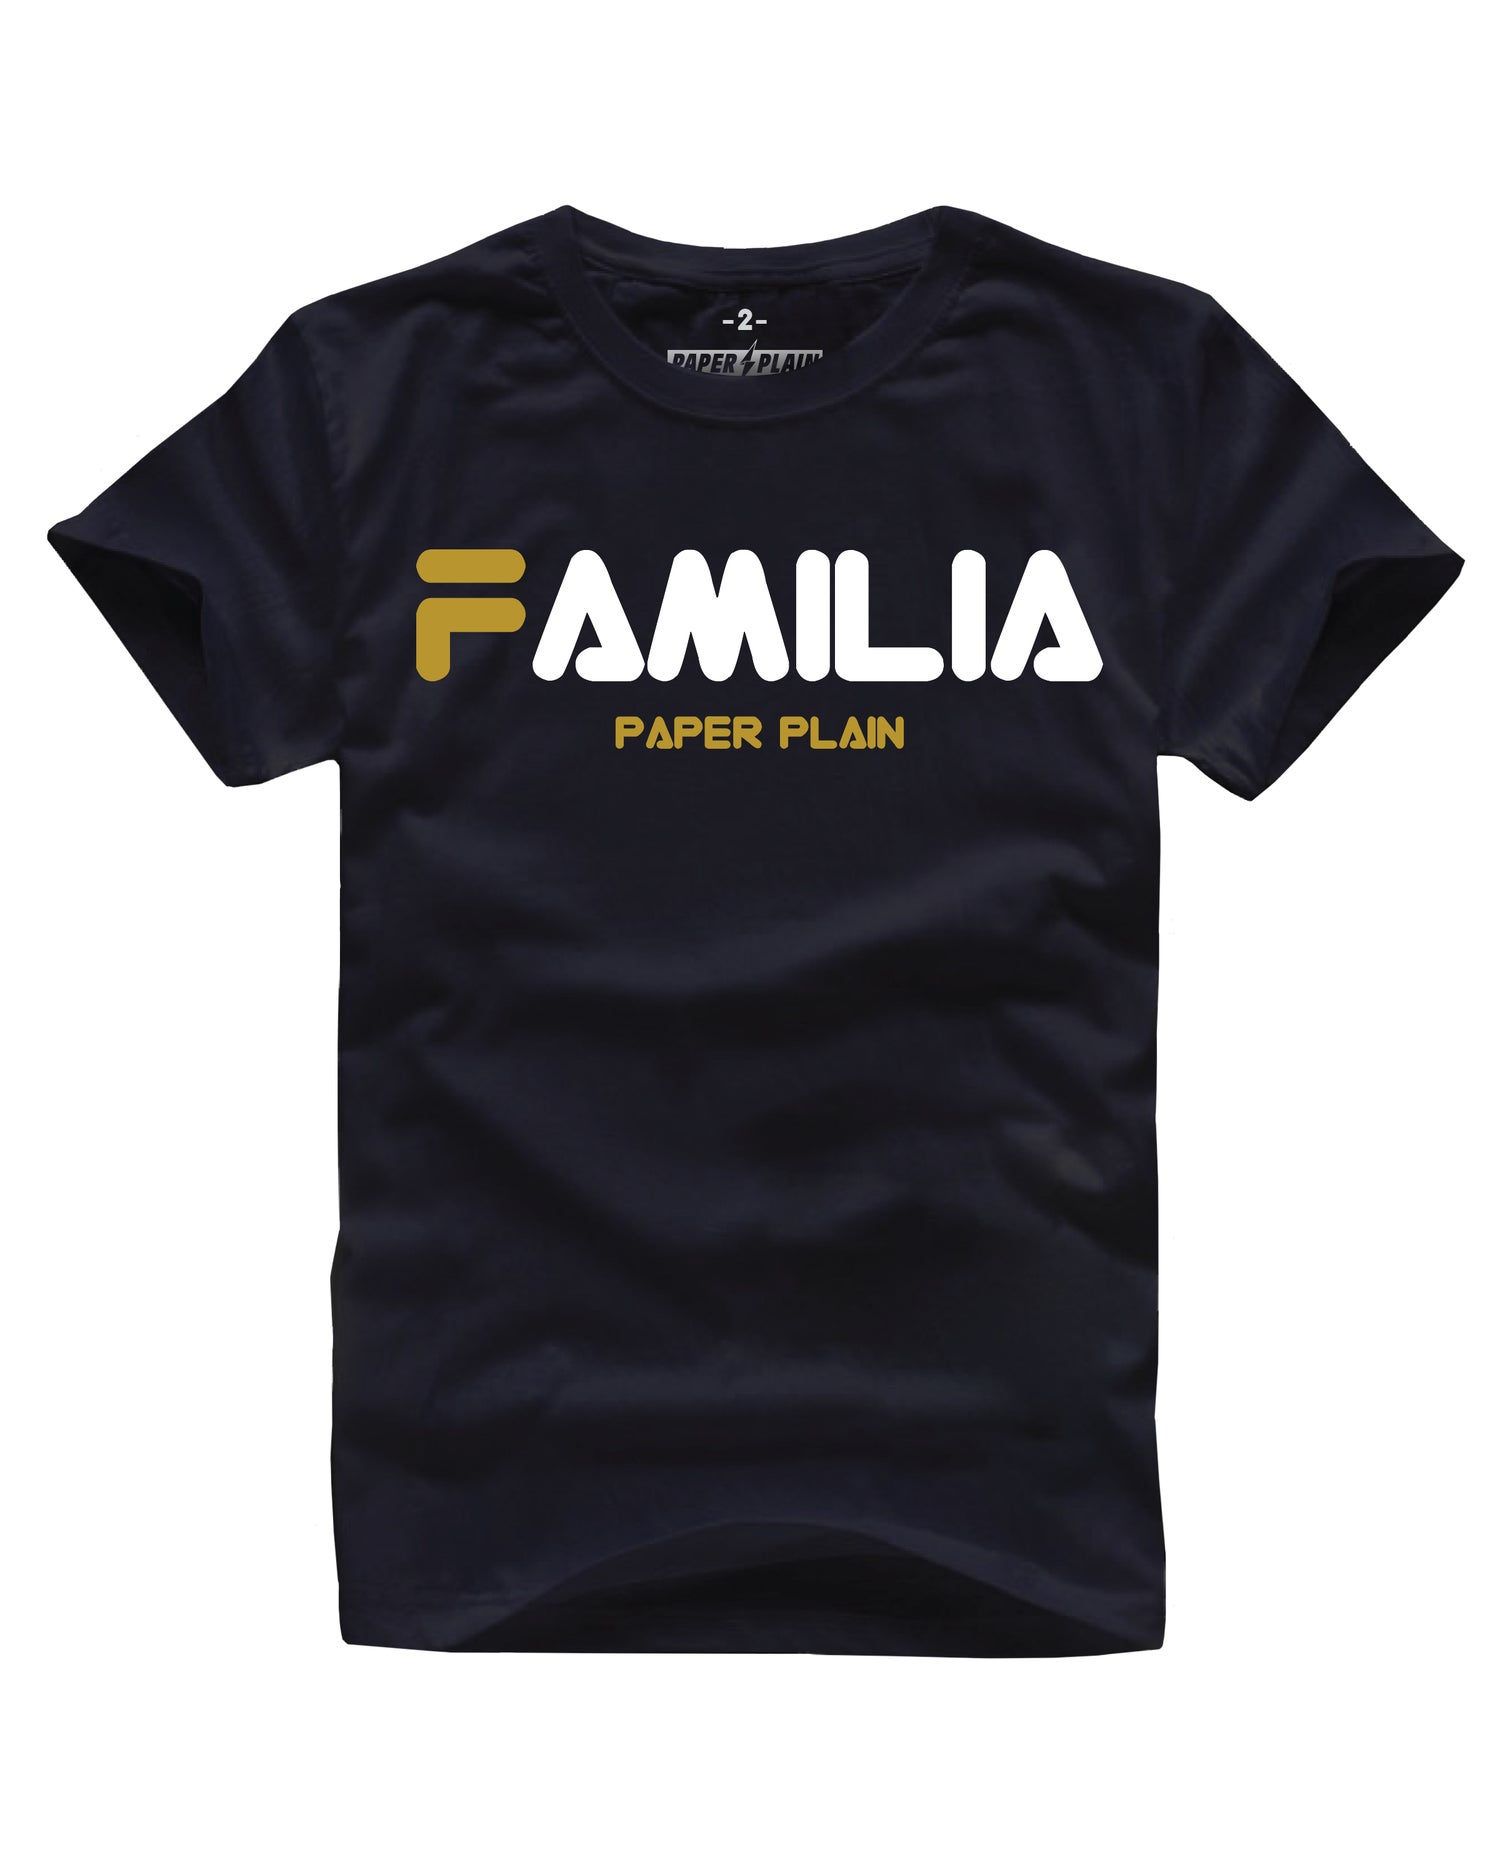 Image of FAMILIA BLACK/GOLD FOIL